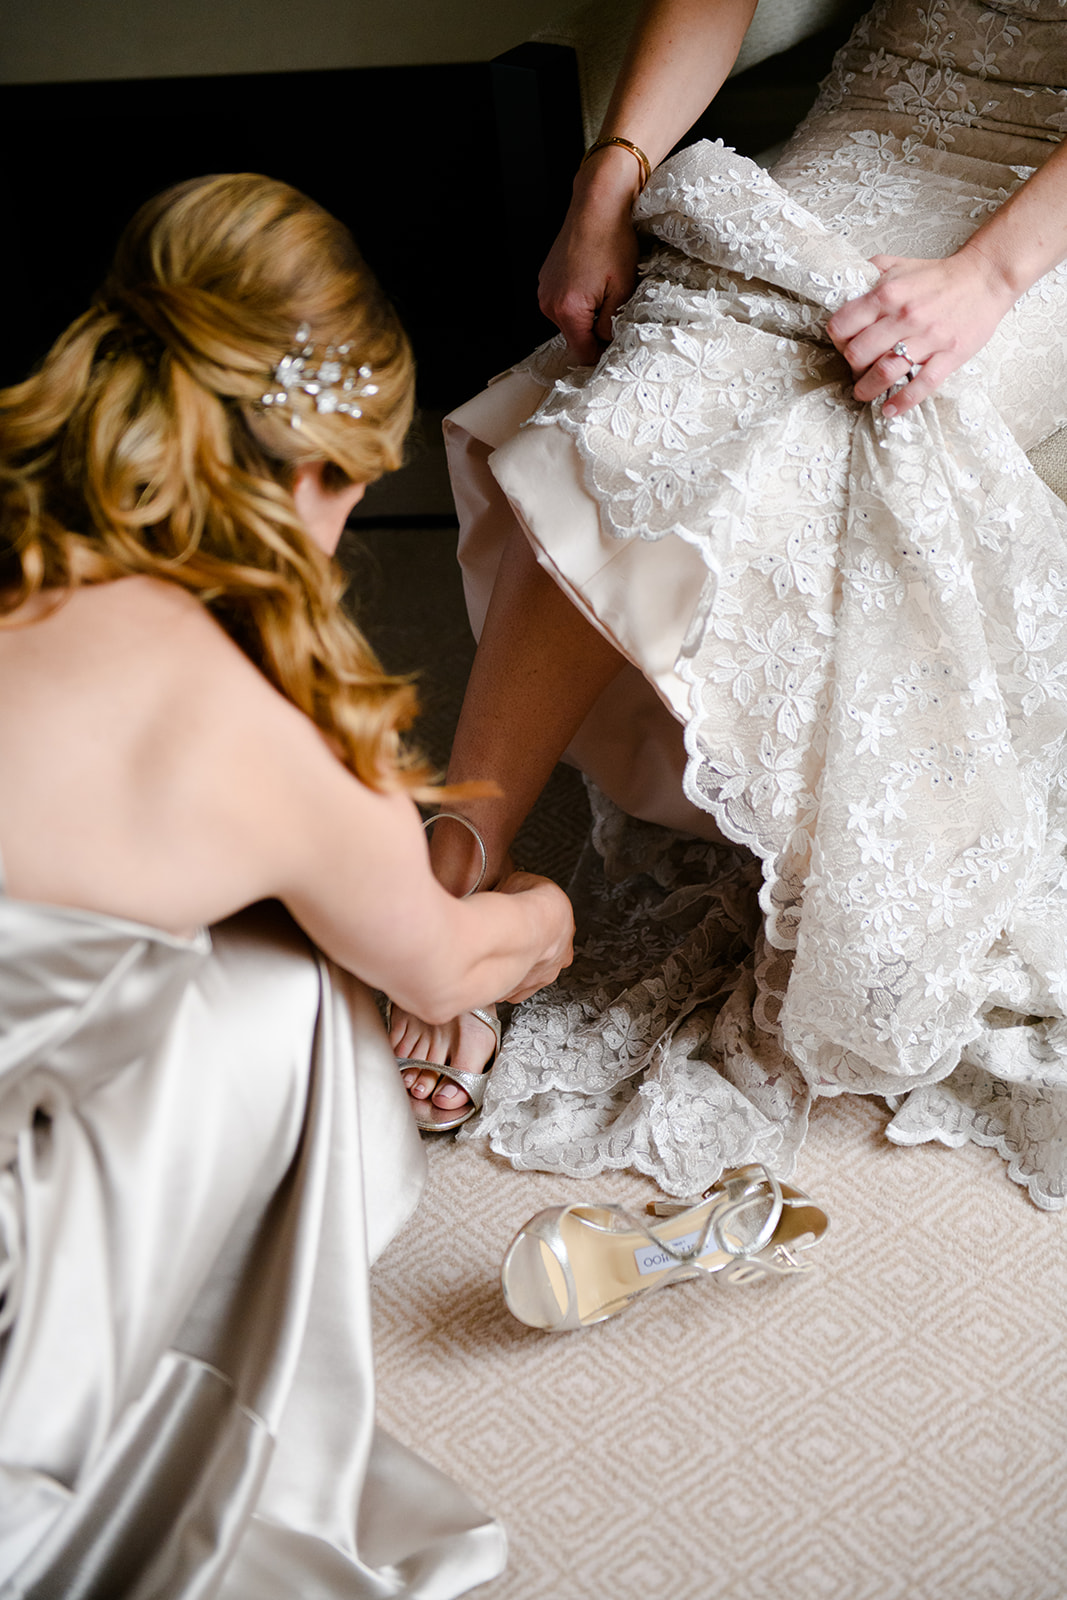 Champagne-colored bridal gowns photograph so beautifully. The charmeuse shell on Claire's gown with the embroidered lace overlay has such beautiful texture. She dressed her bridesmaids in dove gray which is a beautifully complementary color to the champagne wedding gown.